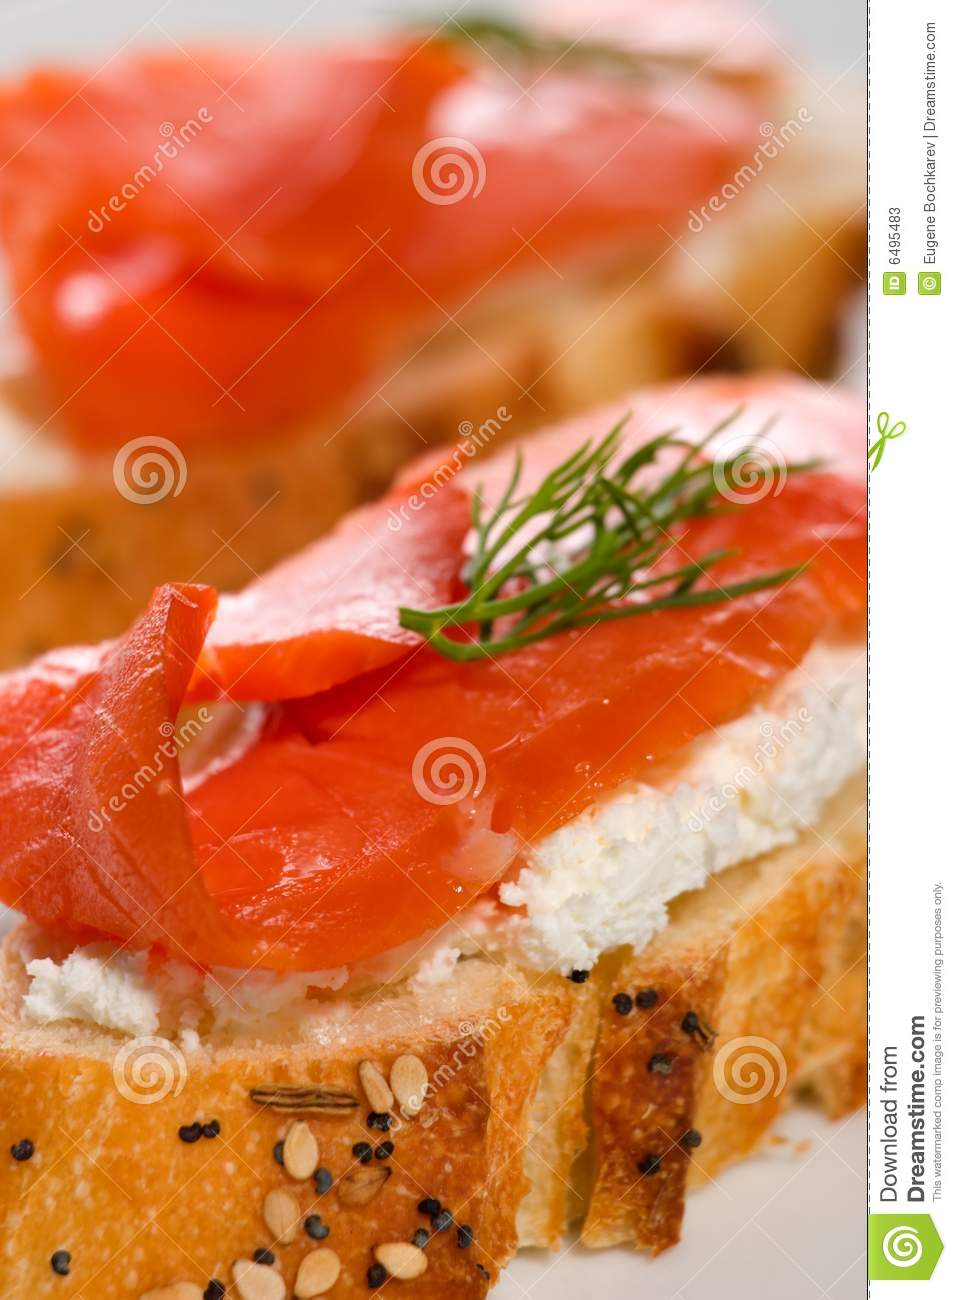 Salmon cheese canape stock photos image 6495483 for Smoked salmon cream cheese canape